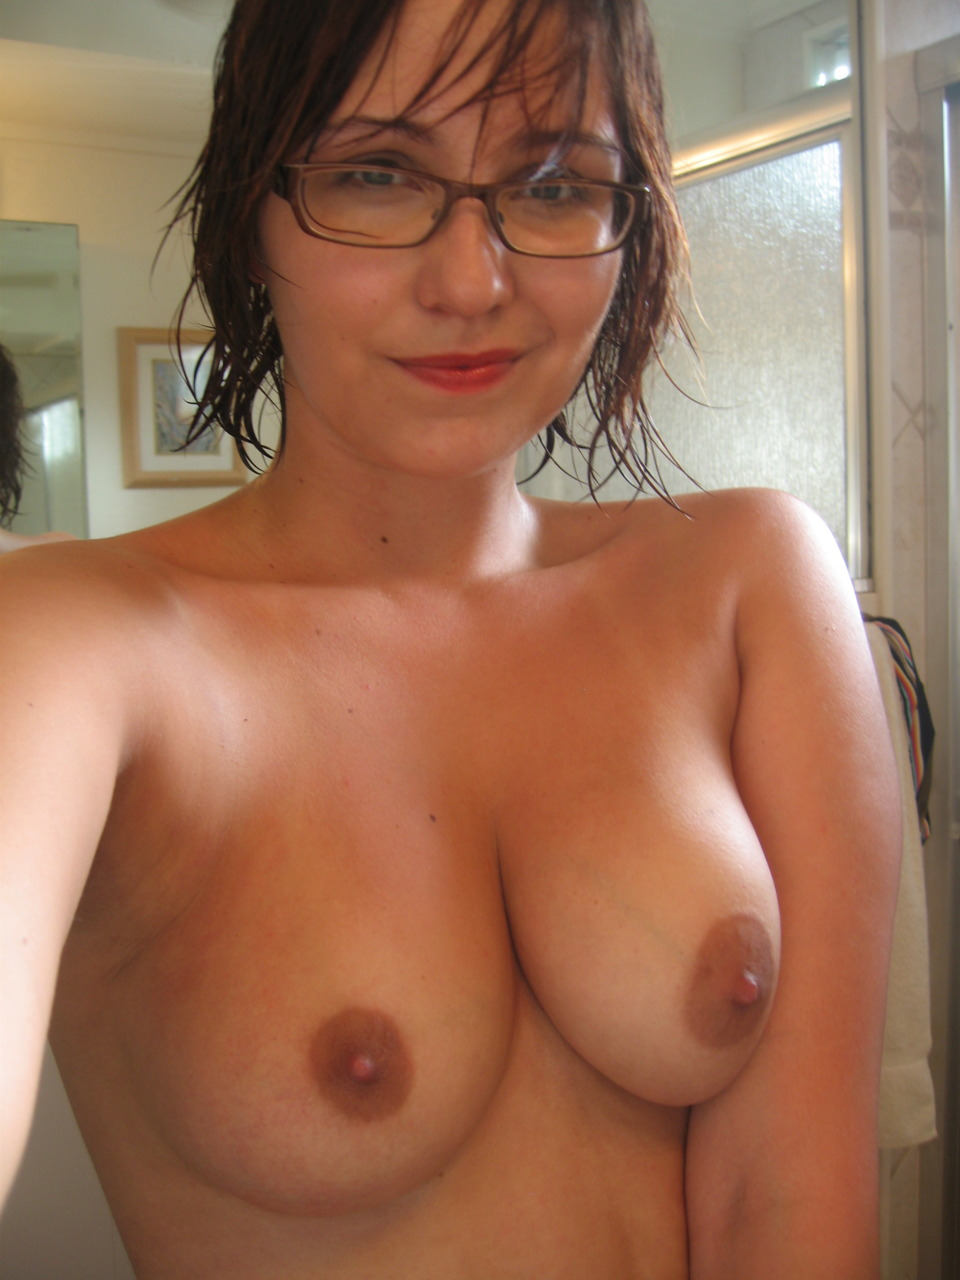 Hot naked nerd girls with glasses - Photos and other amusements